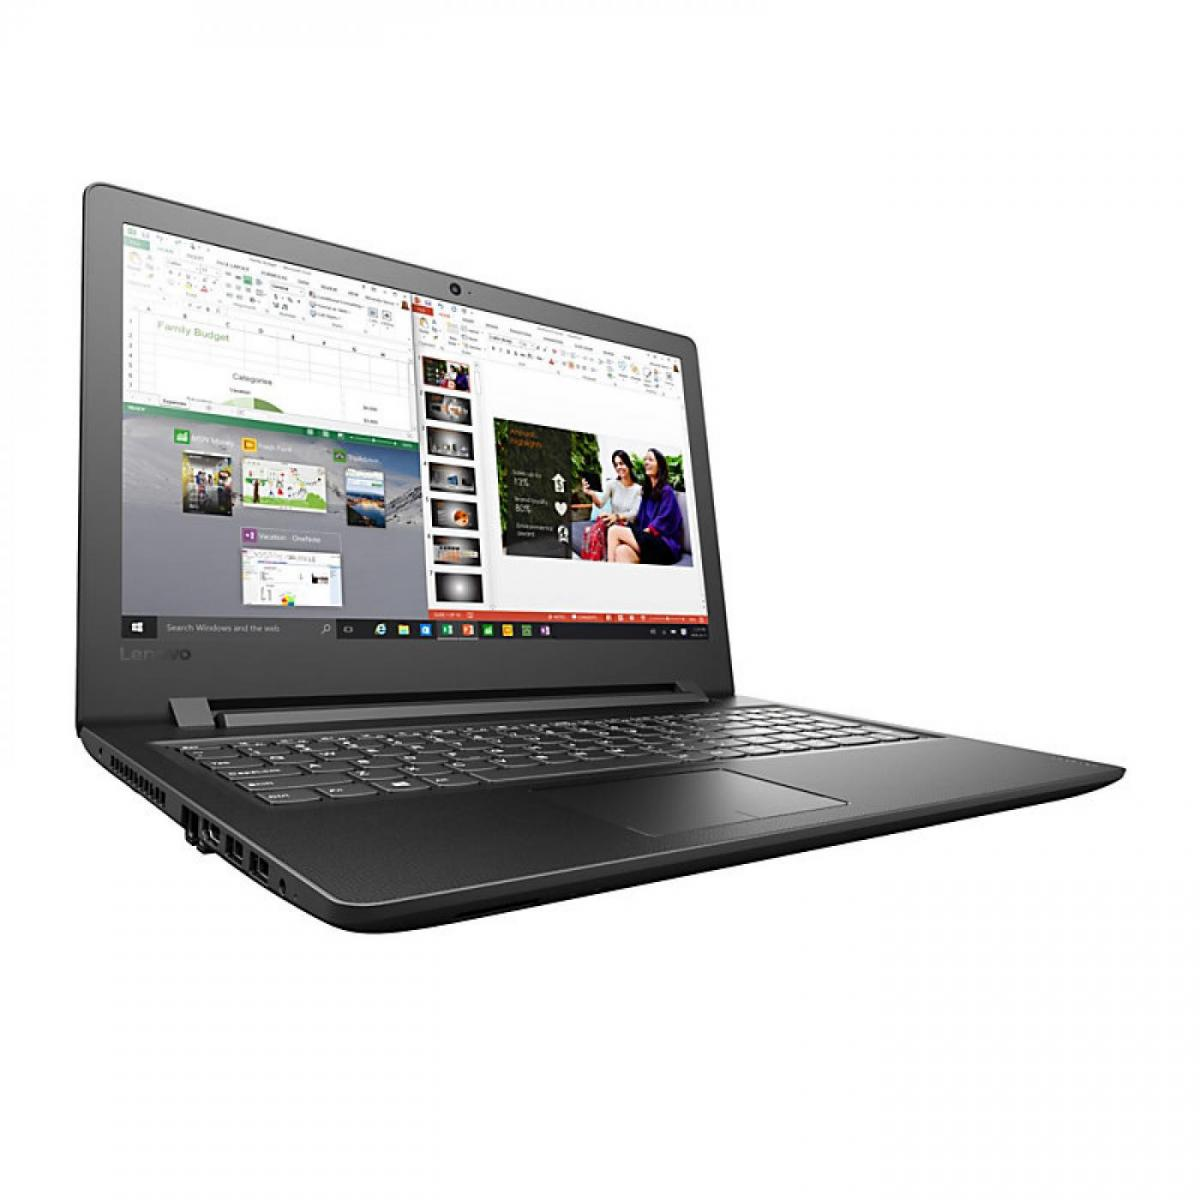 lenovo ideapad 110 core i7. Black Bedroom Furniture Sets. Home Design Ideas